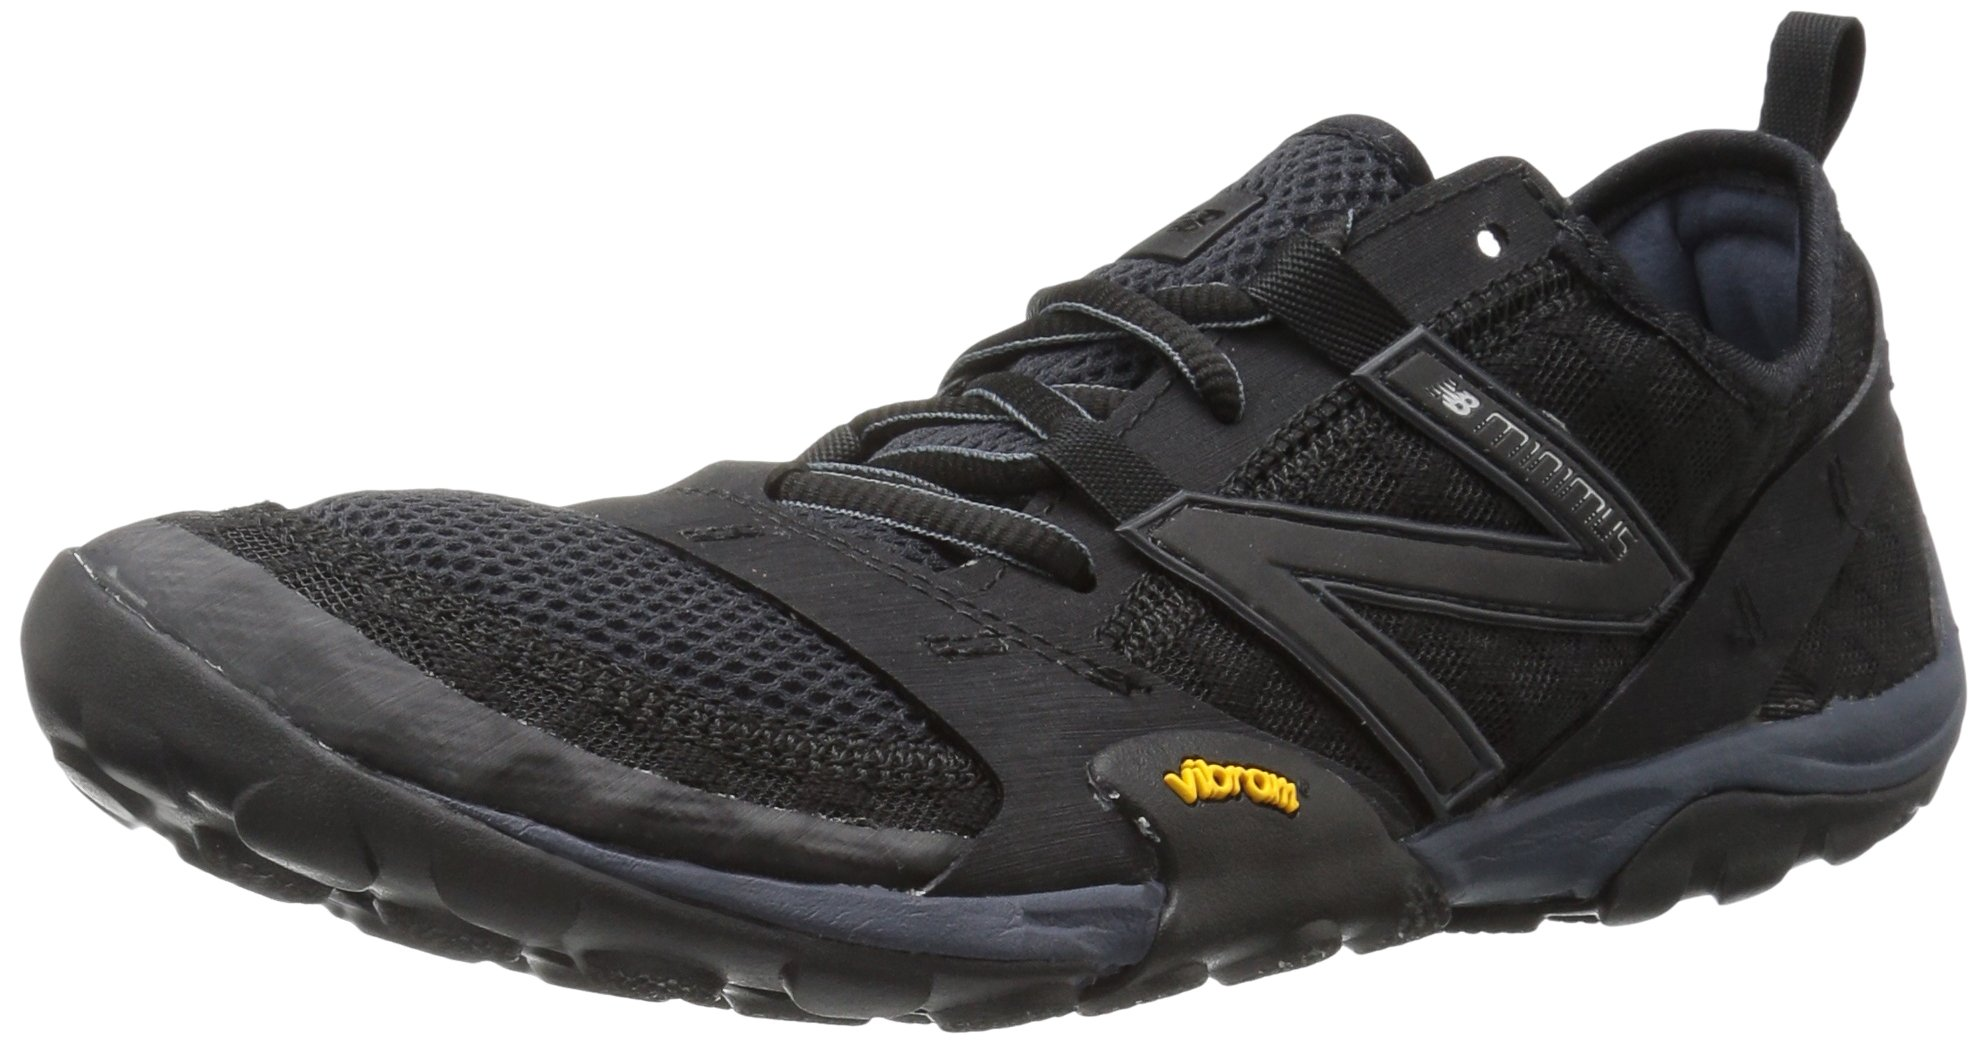 New Balance Men's MT10V1 Minimus Trail Running Shoe, Black/Silver, 9.5 D US by New Balance